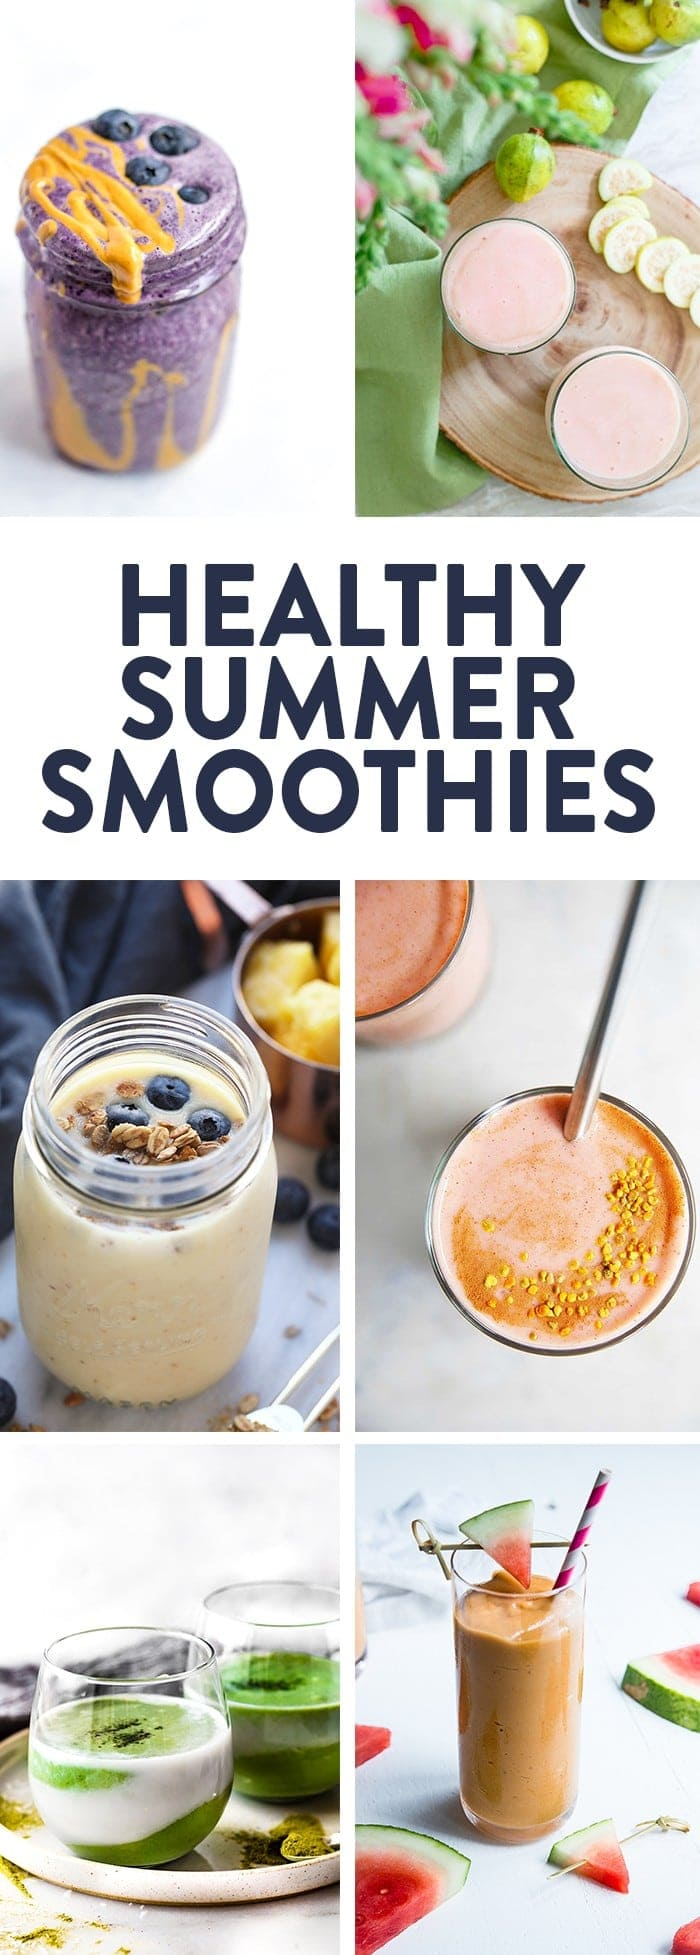 The best healthy smoothie recipes perfect for spring and summer! Gluten free, dairy free, and paleo options!